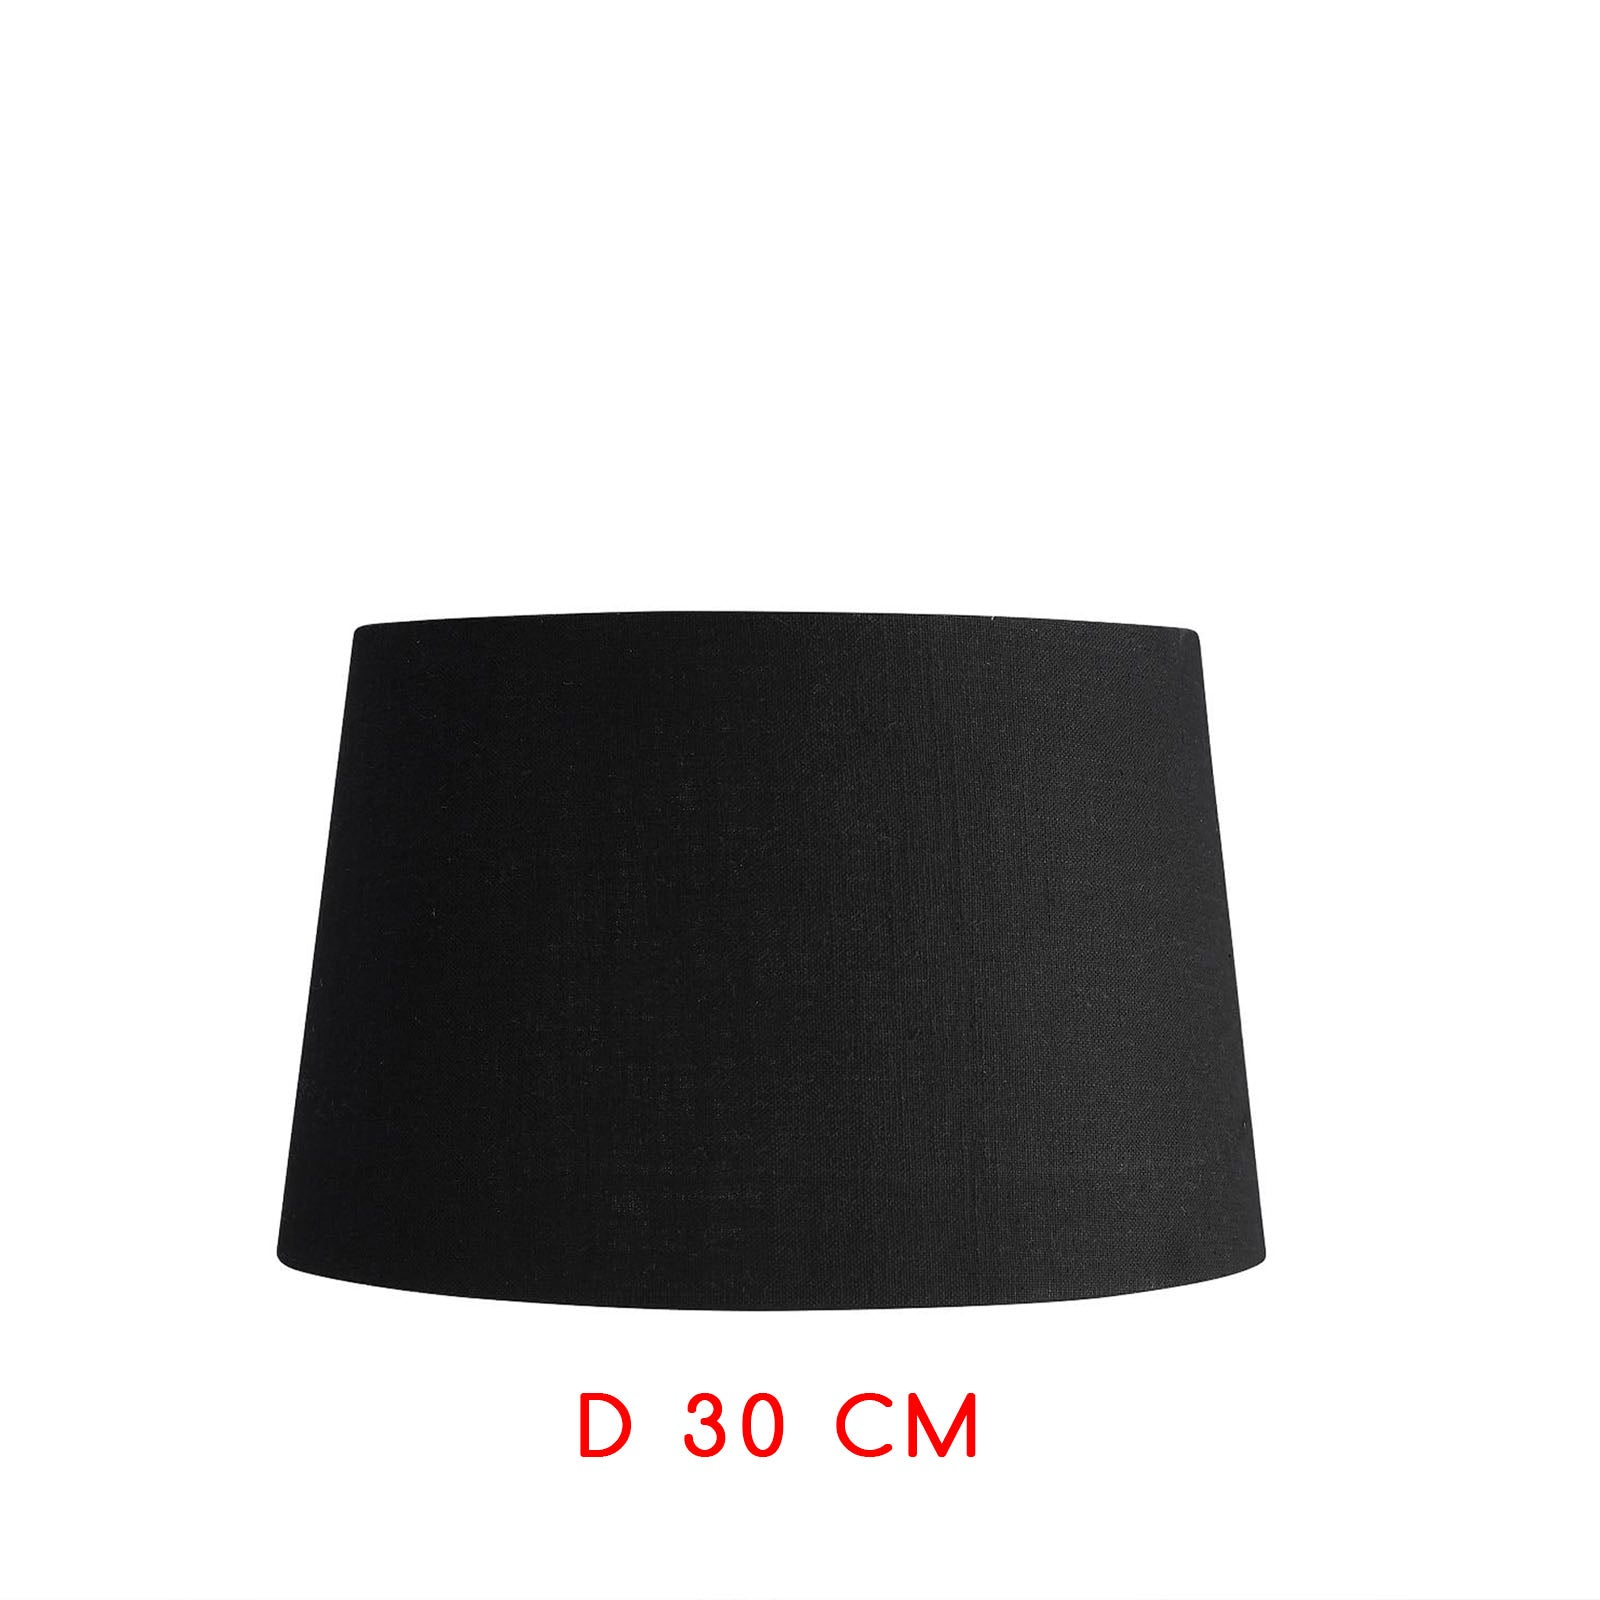 Pre-Order 25 days delivery  Table Lamp Shade Black-Small -  طلب المسبق 25 يوما التسليم غطاء مصباح ارضي أسود - Shop Online Furniture and Home Decor Store in Dubai, UAE at ebarza